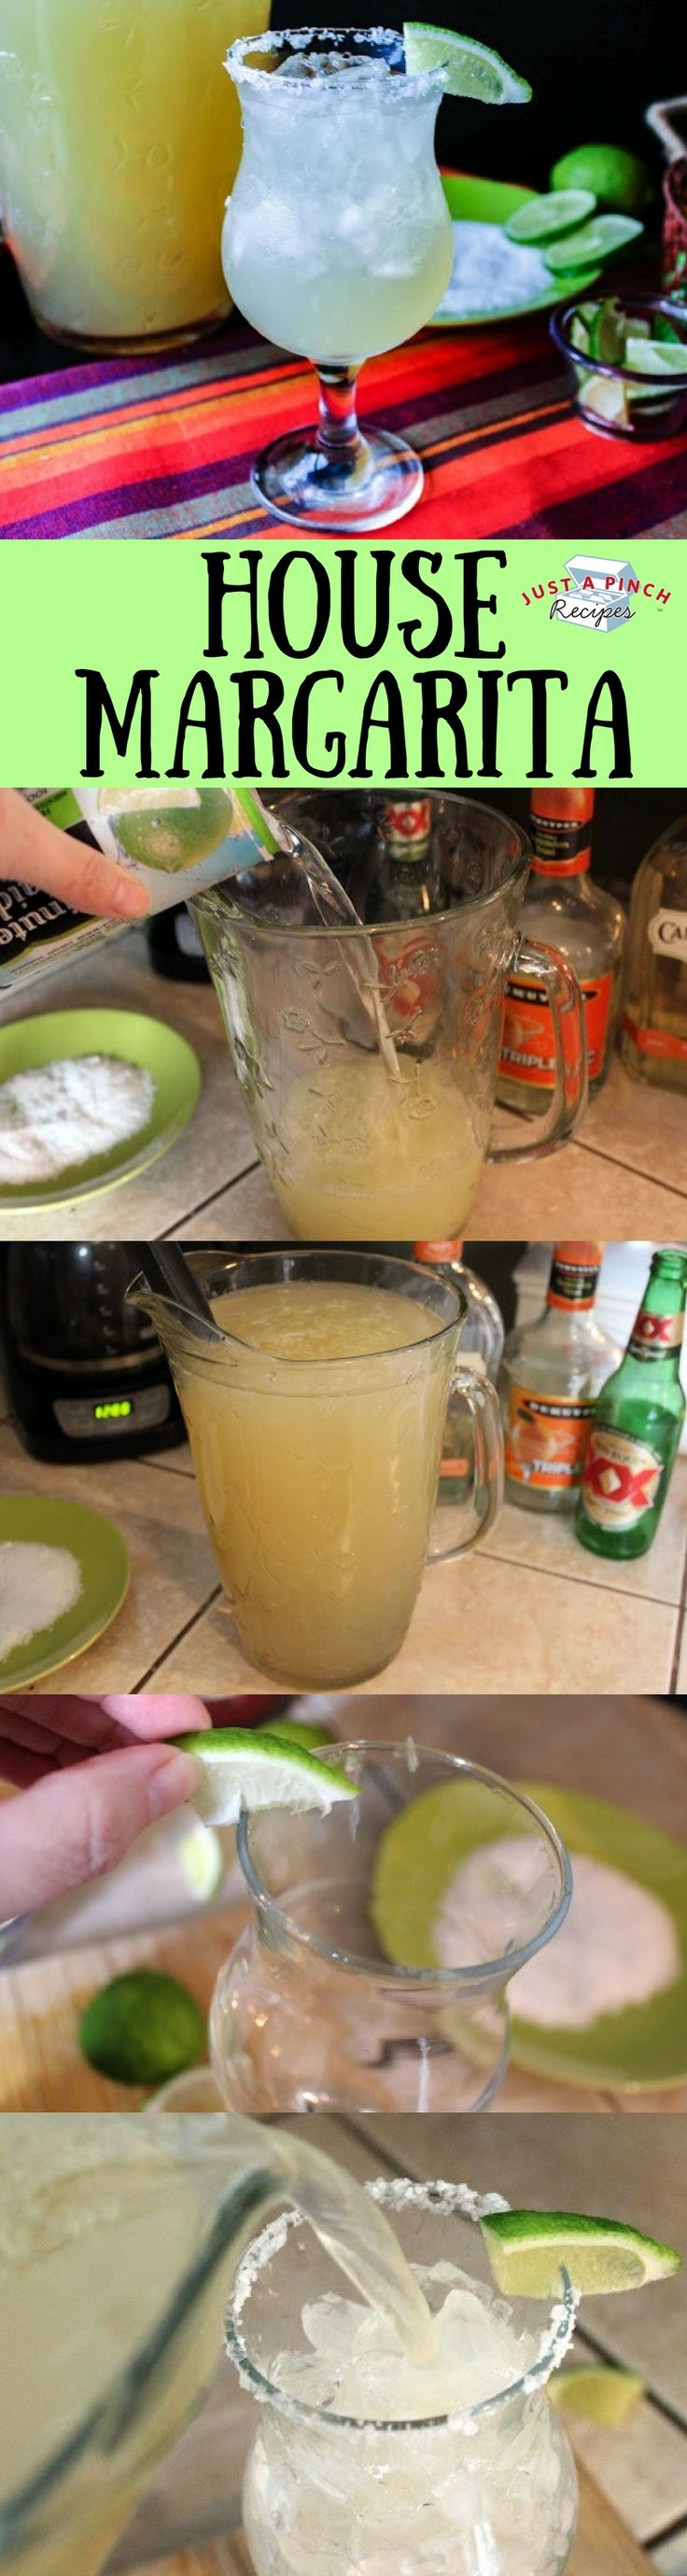 Homemade margarita recipe that's perfect to sip on while enjoying chips and salsa!